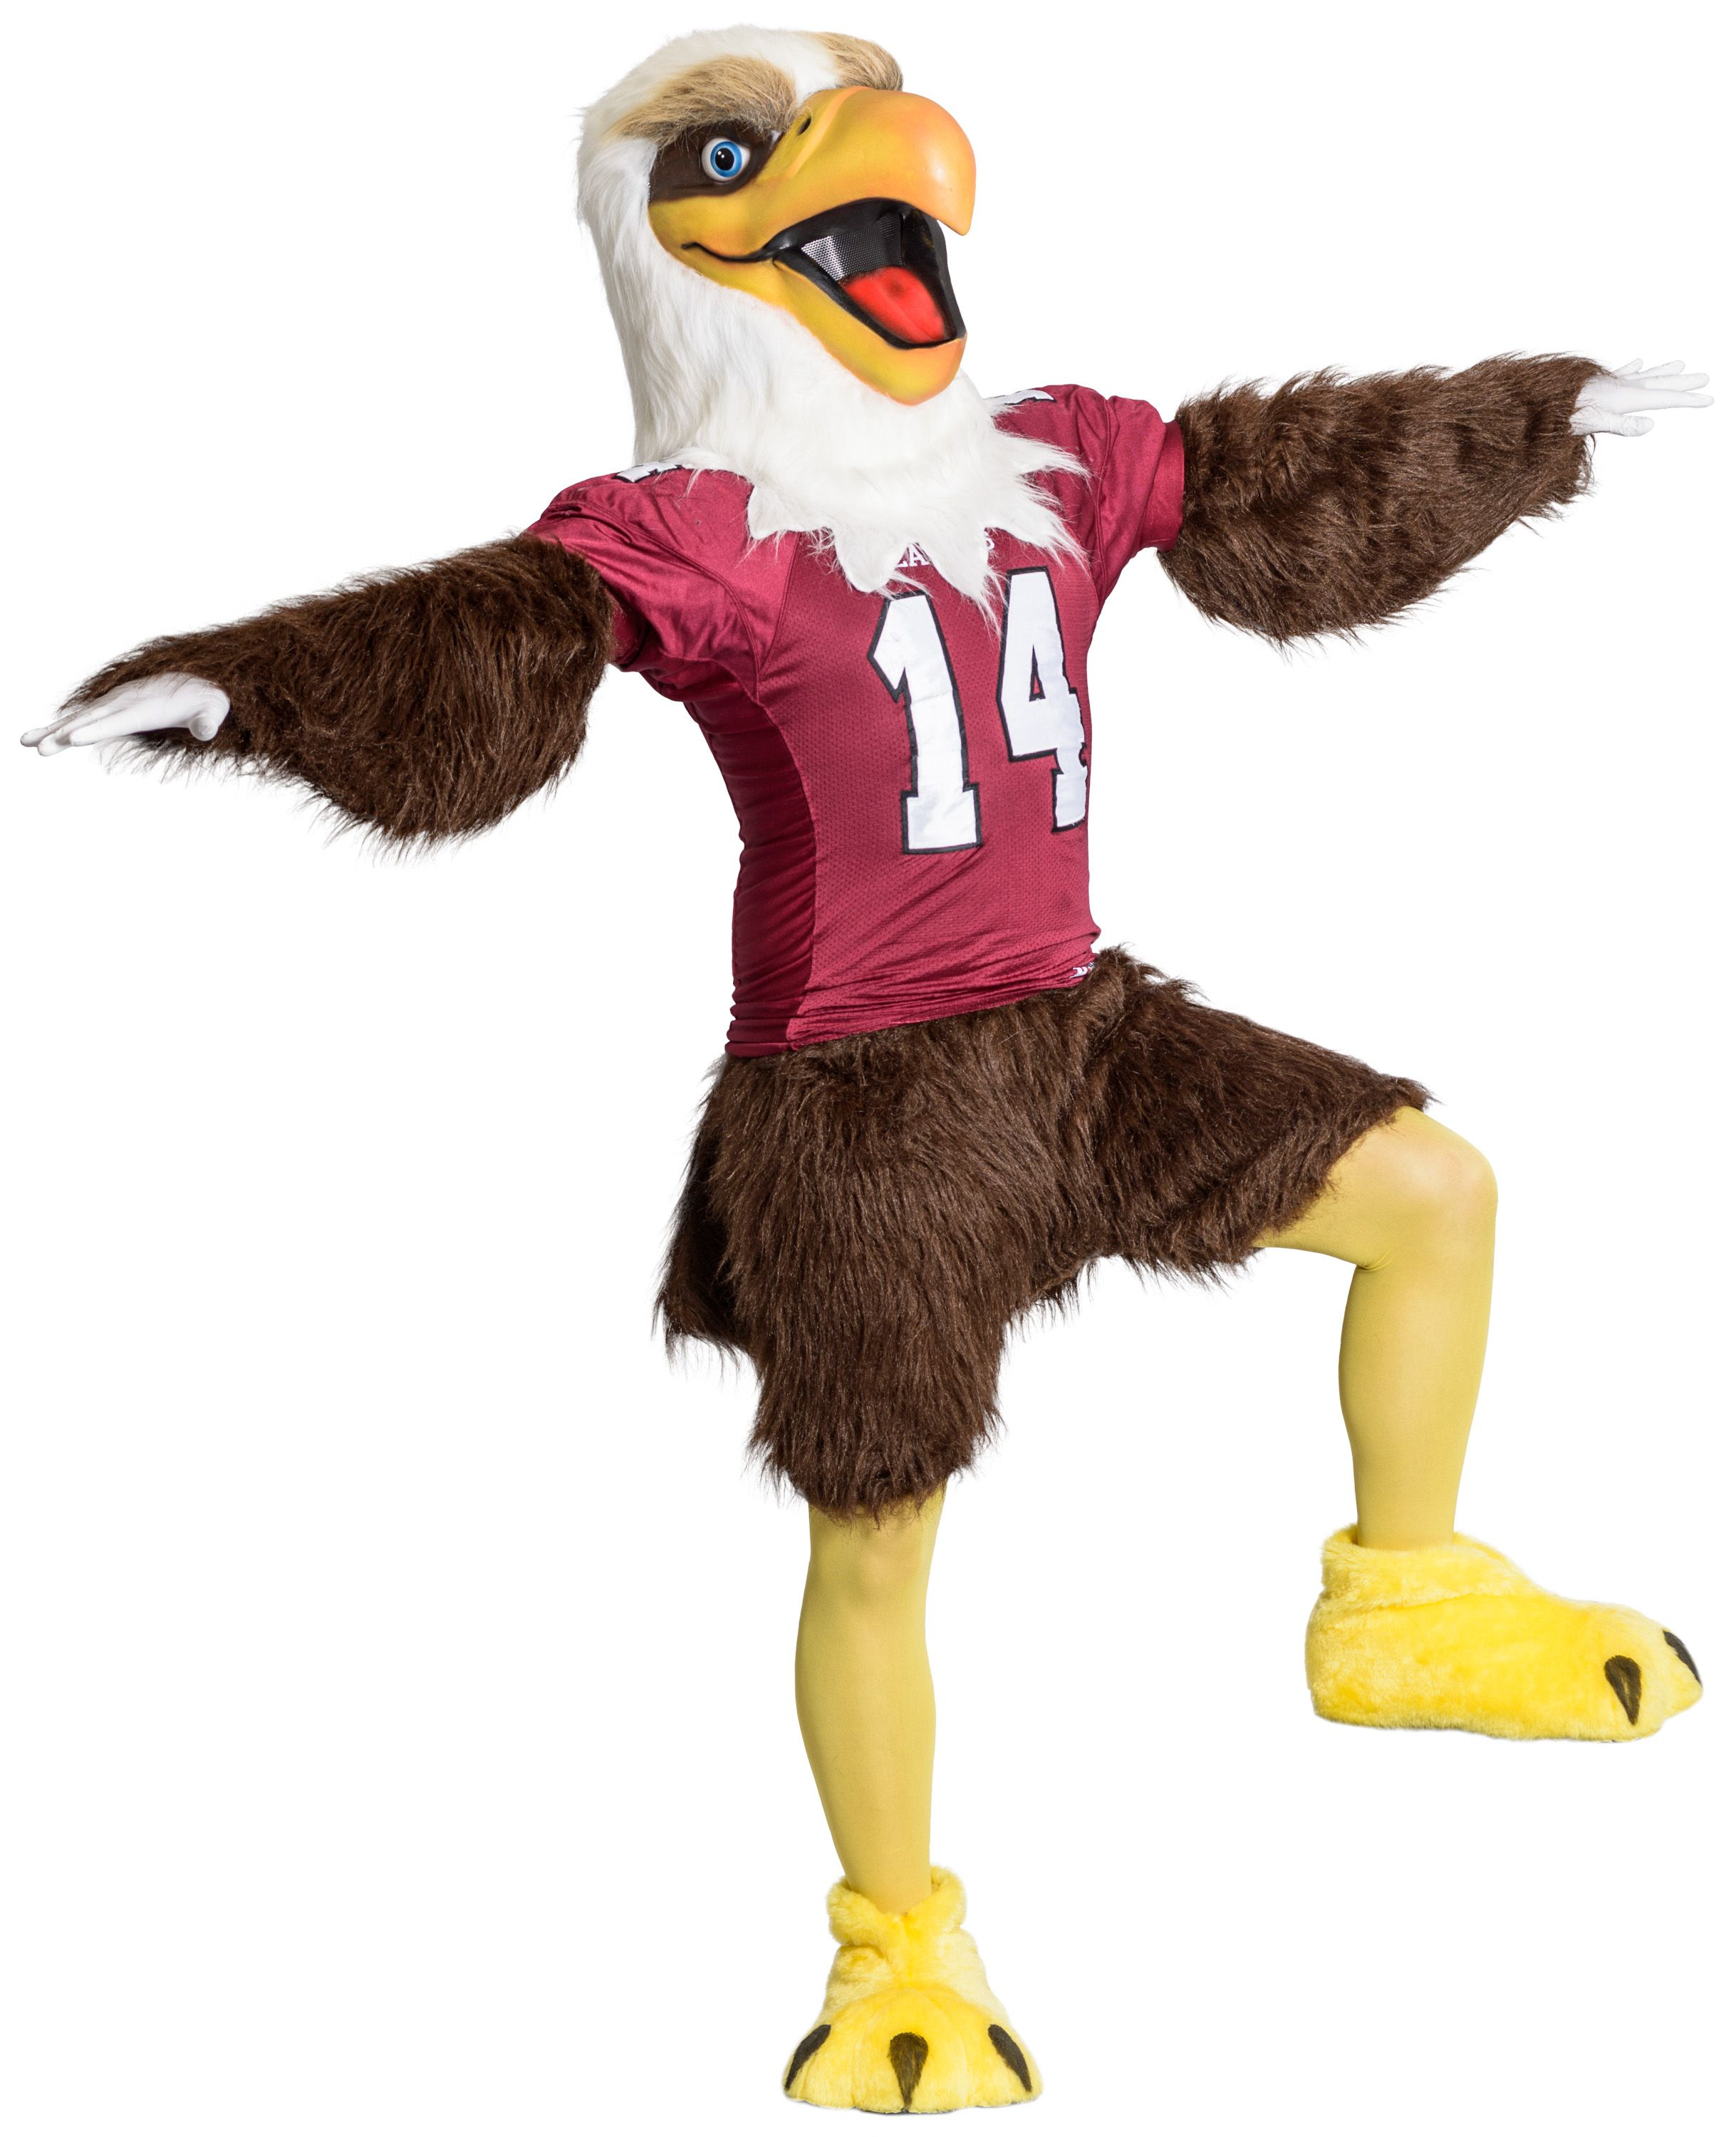 The Mascot For Chadron State College Is Elmo The Eagle Since The Early 1980s Elmo Has Entertained Fans At Sporting Events Eagle Mascot Mascot Costumes Mascot